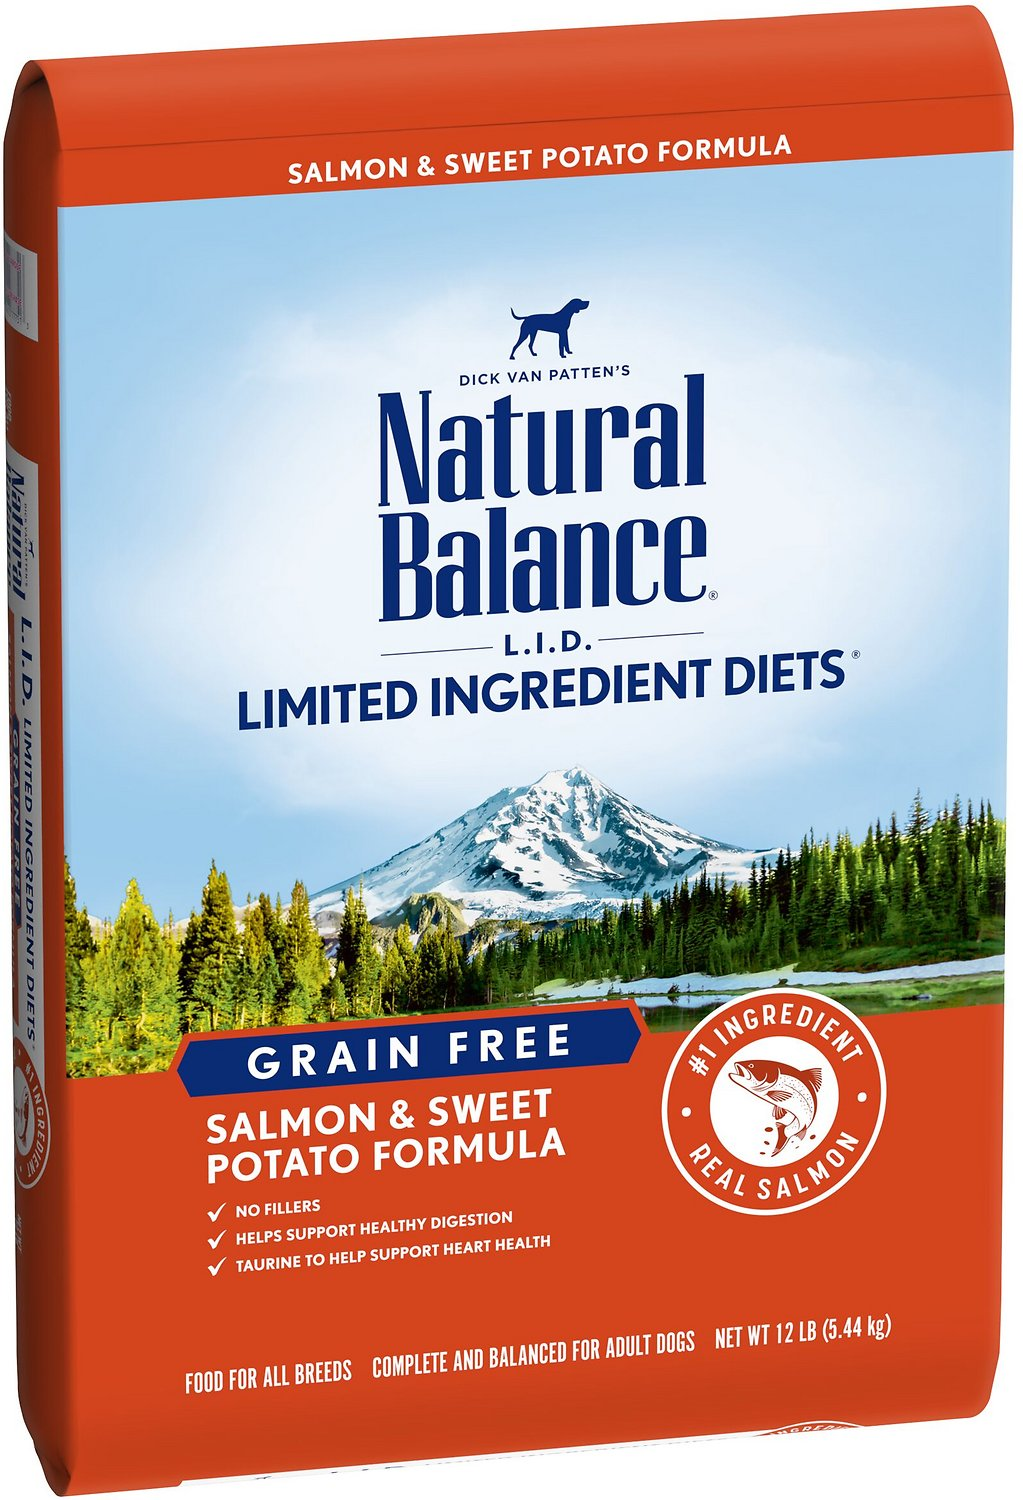 Natural Balance L.I.D. Limited Ingredient Diets Salmon & Sweet Potato Grain-Free Dry Dog Food, 12-lb